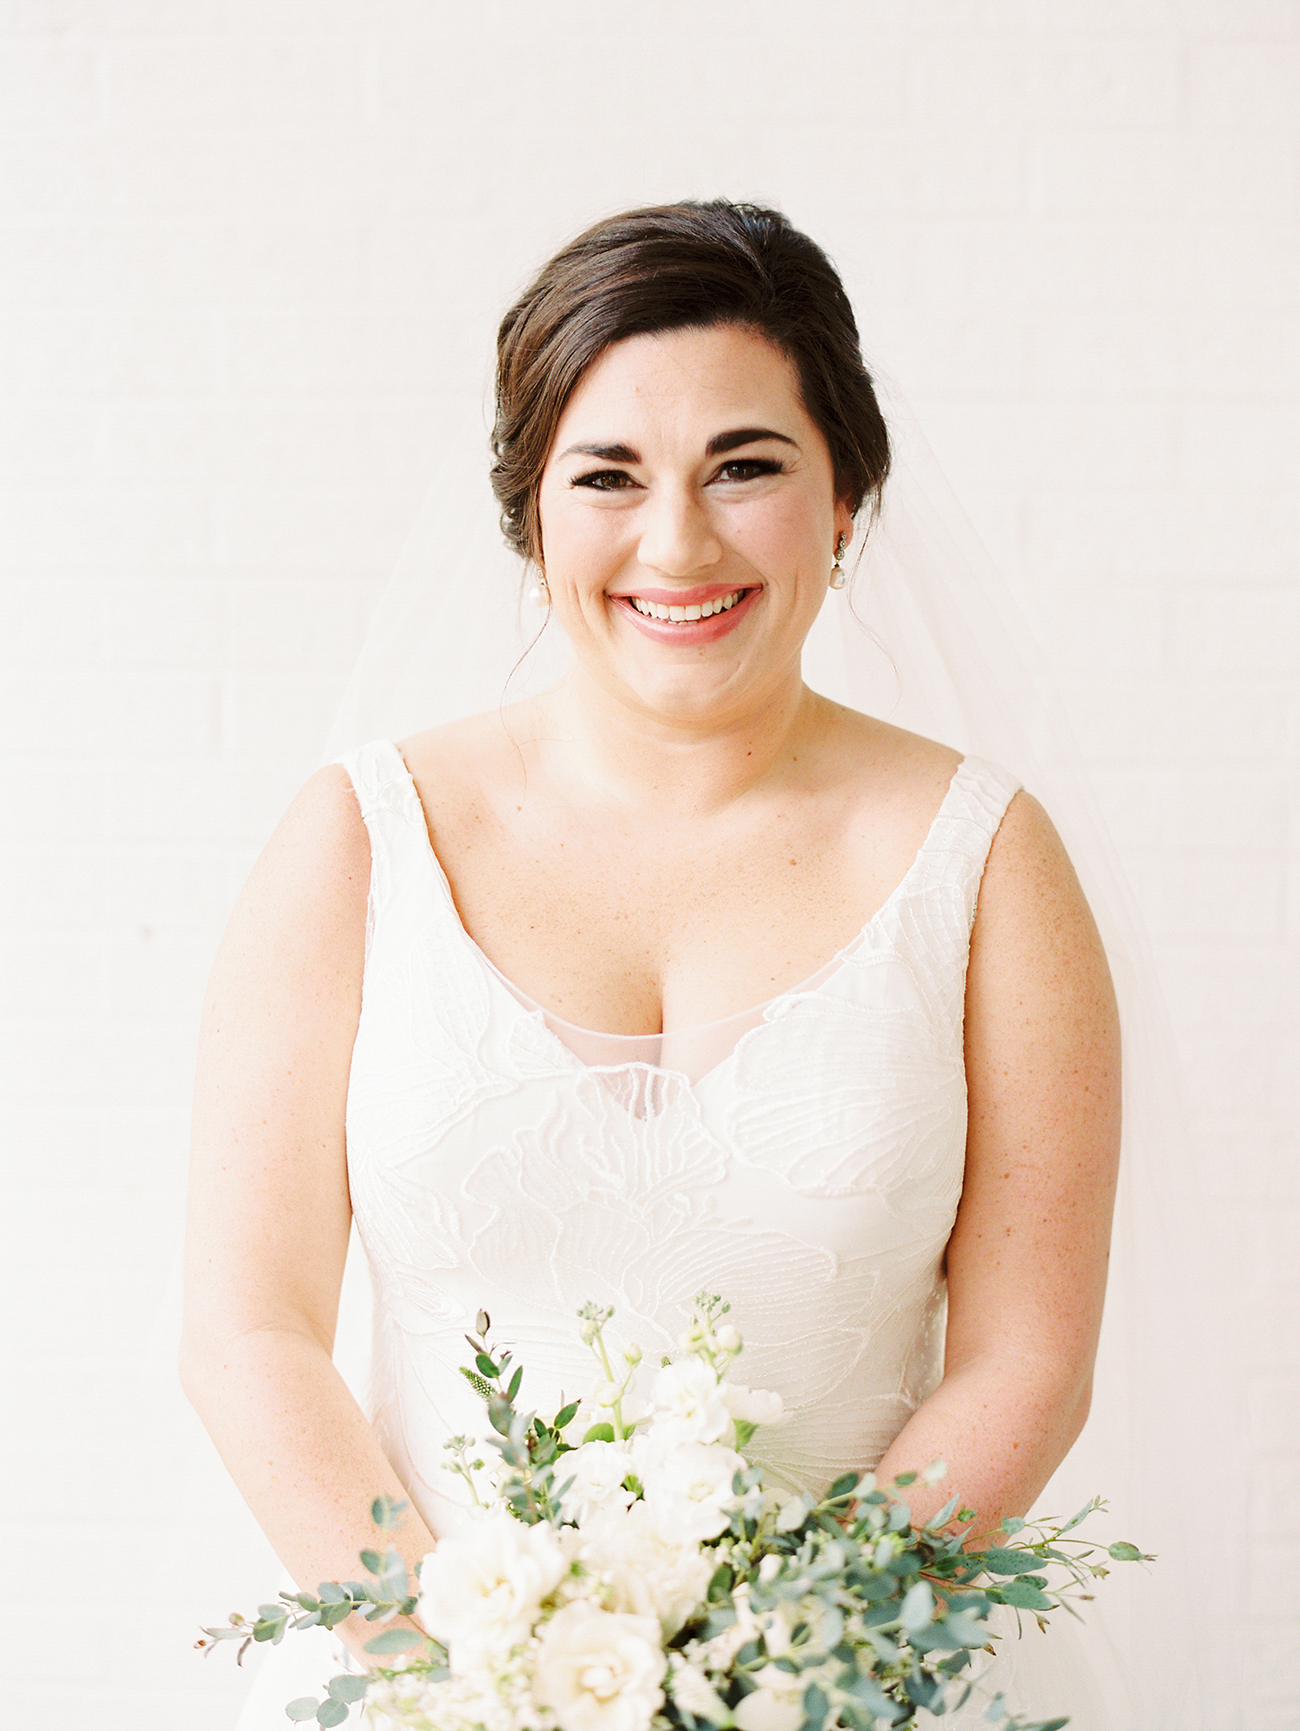 nrp-nancy-ashleydavisbridals-2057